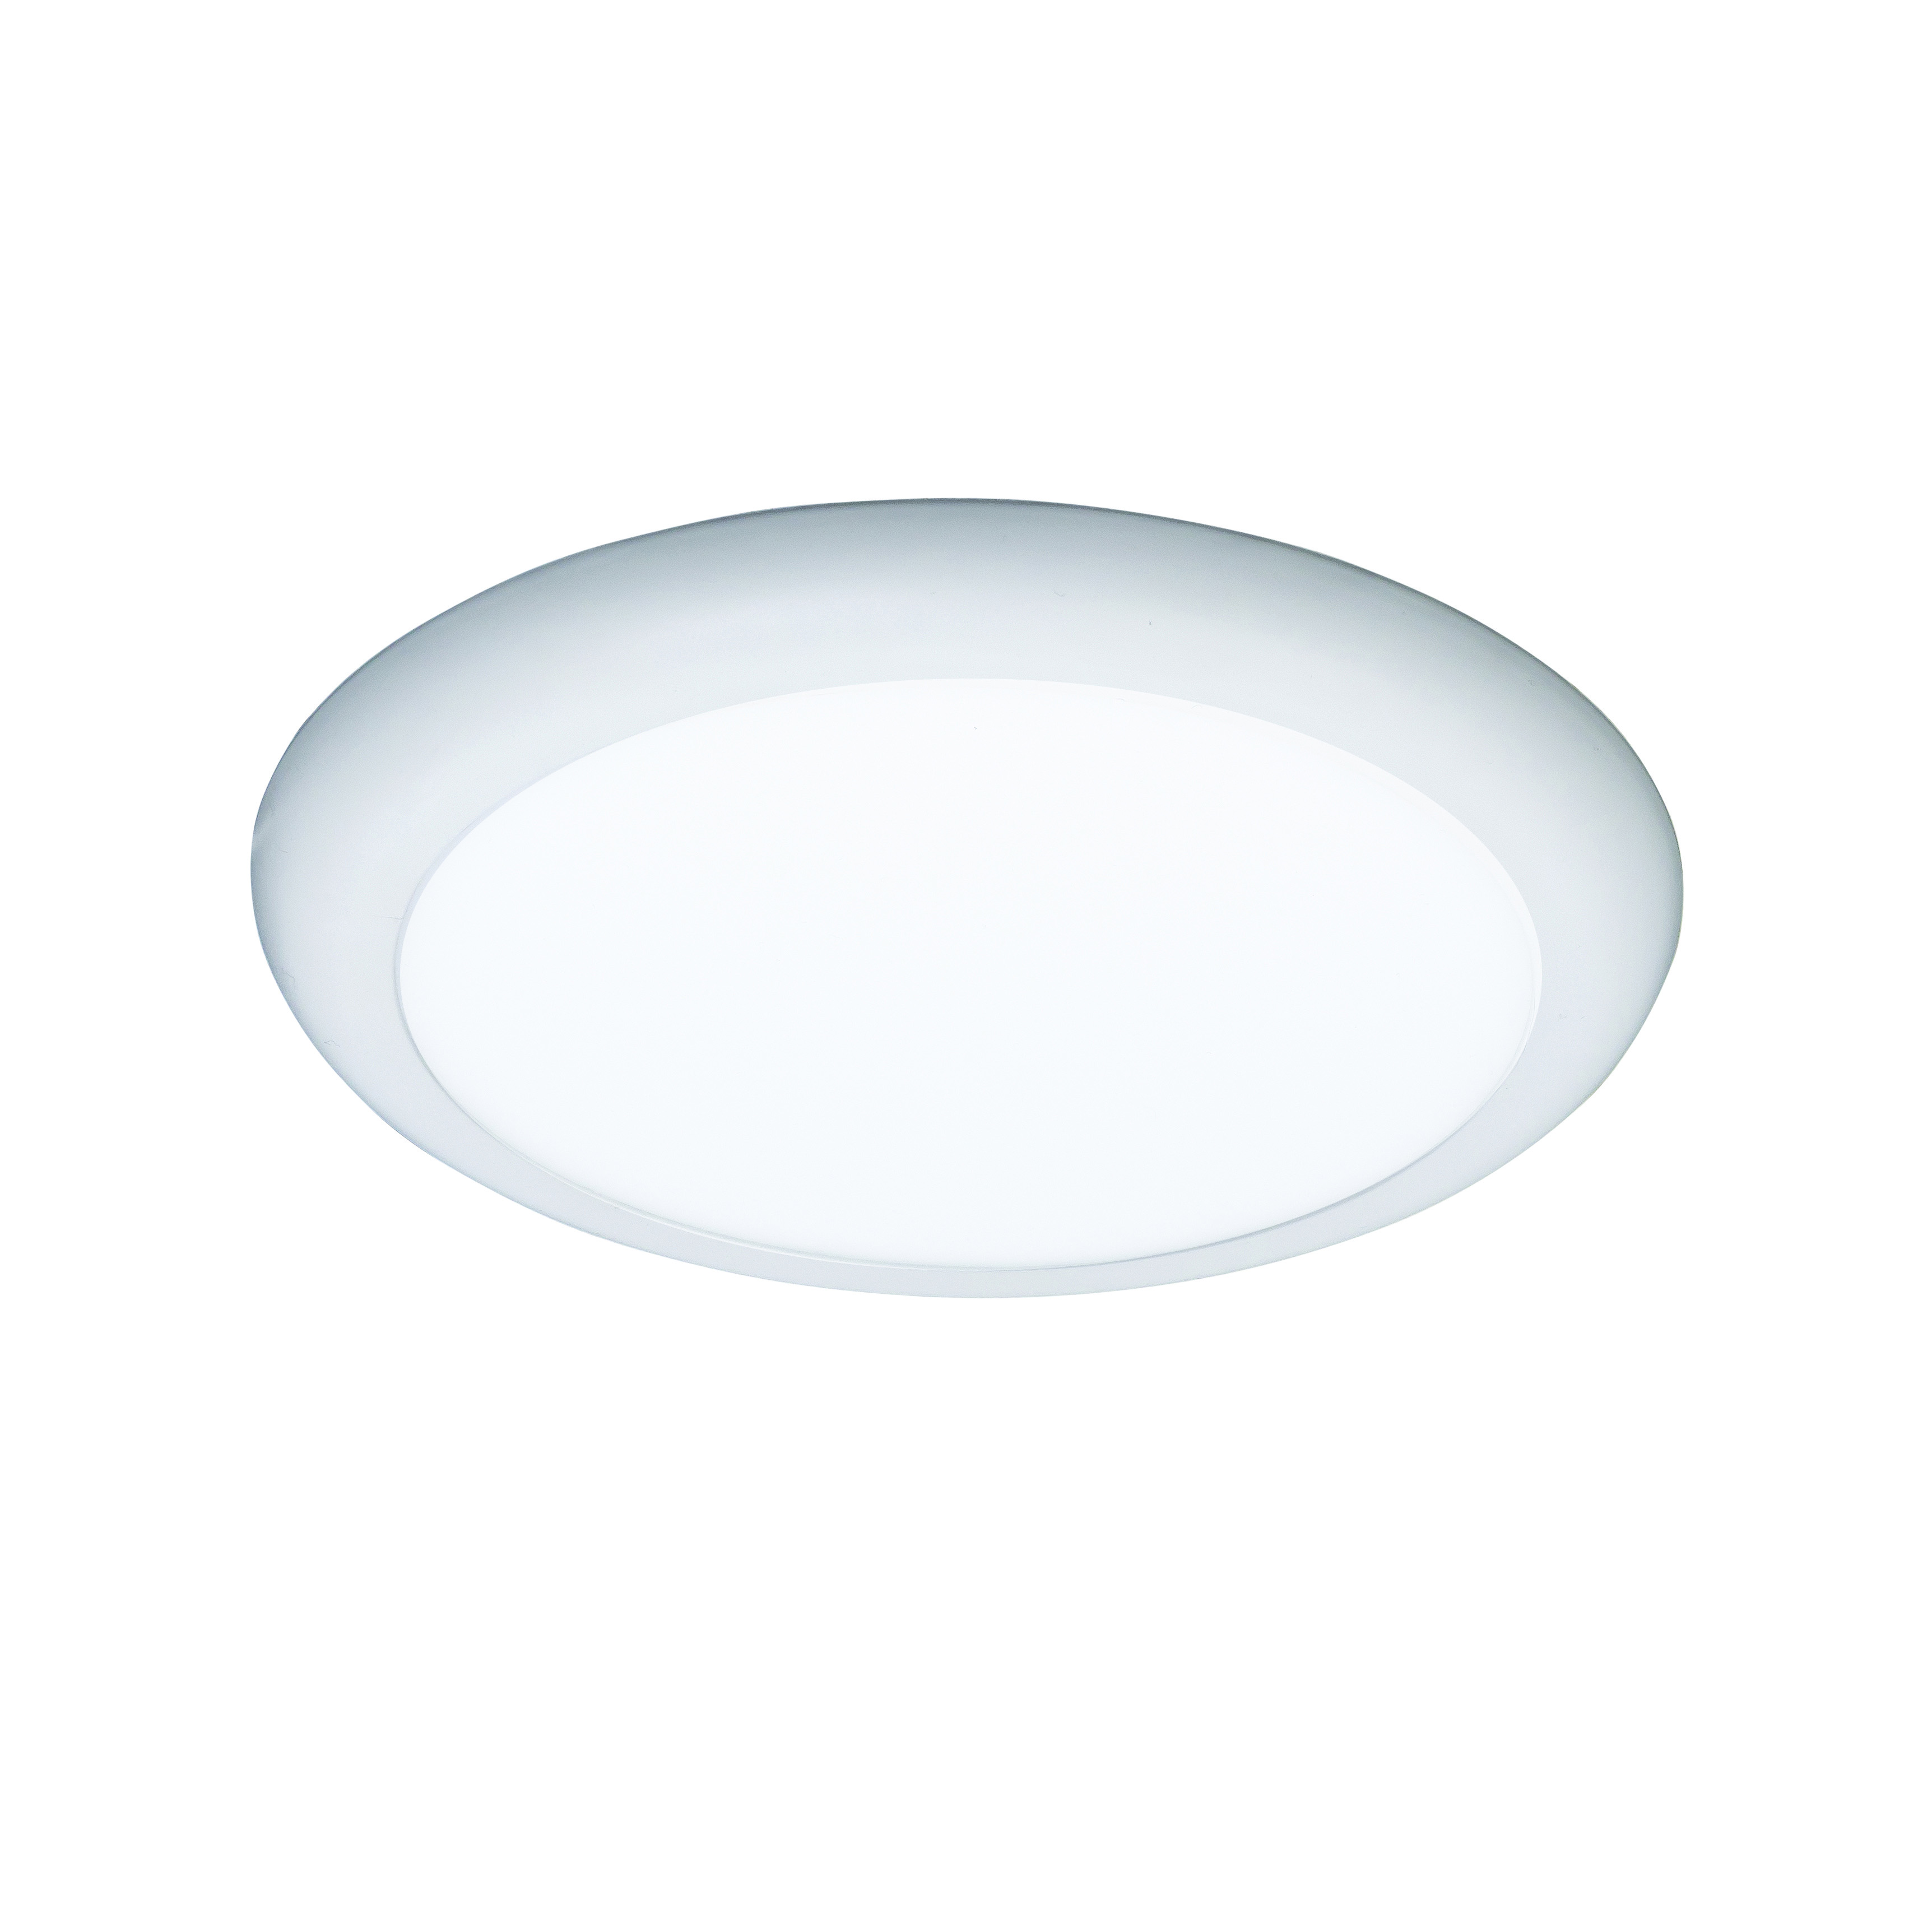 Aero Ceiling Fixture / Downlight